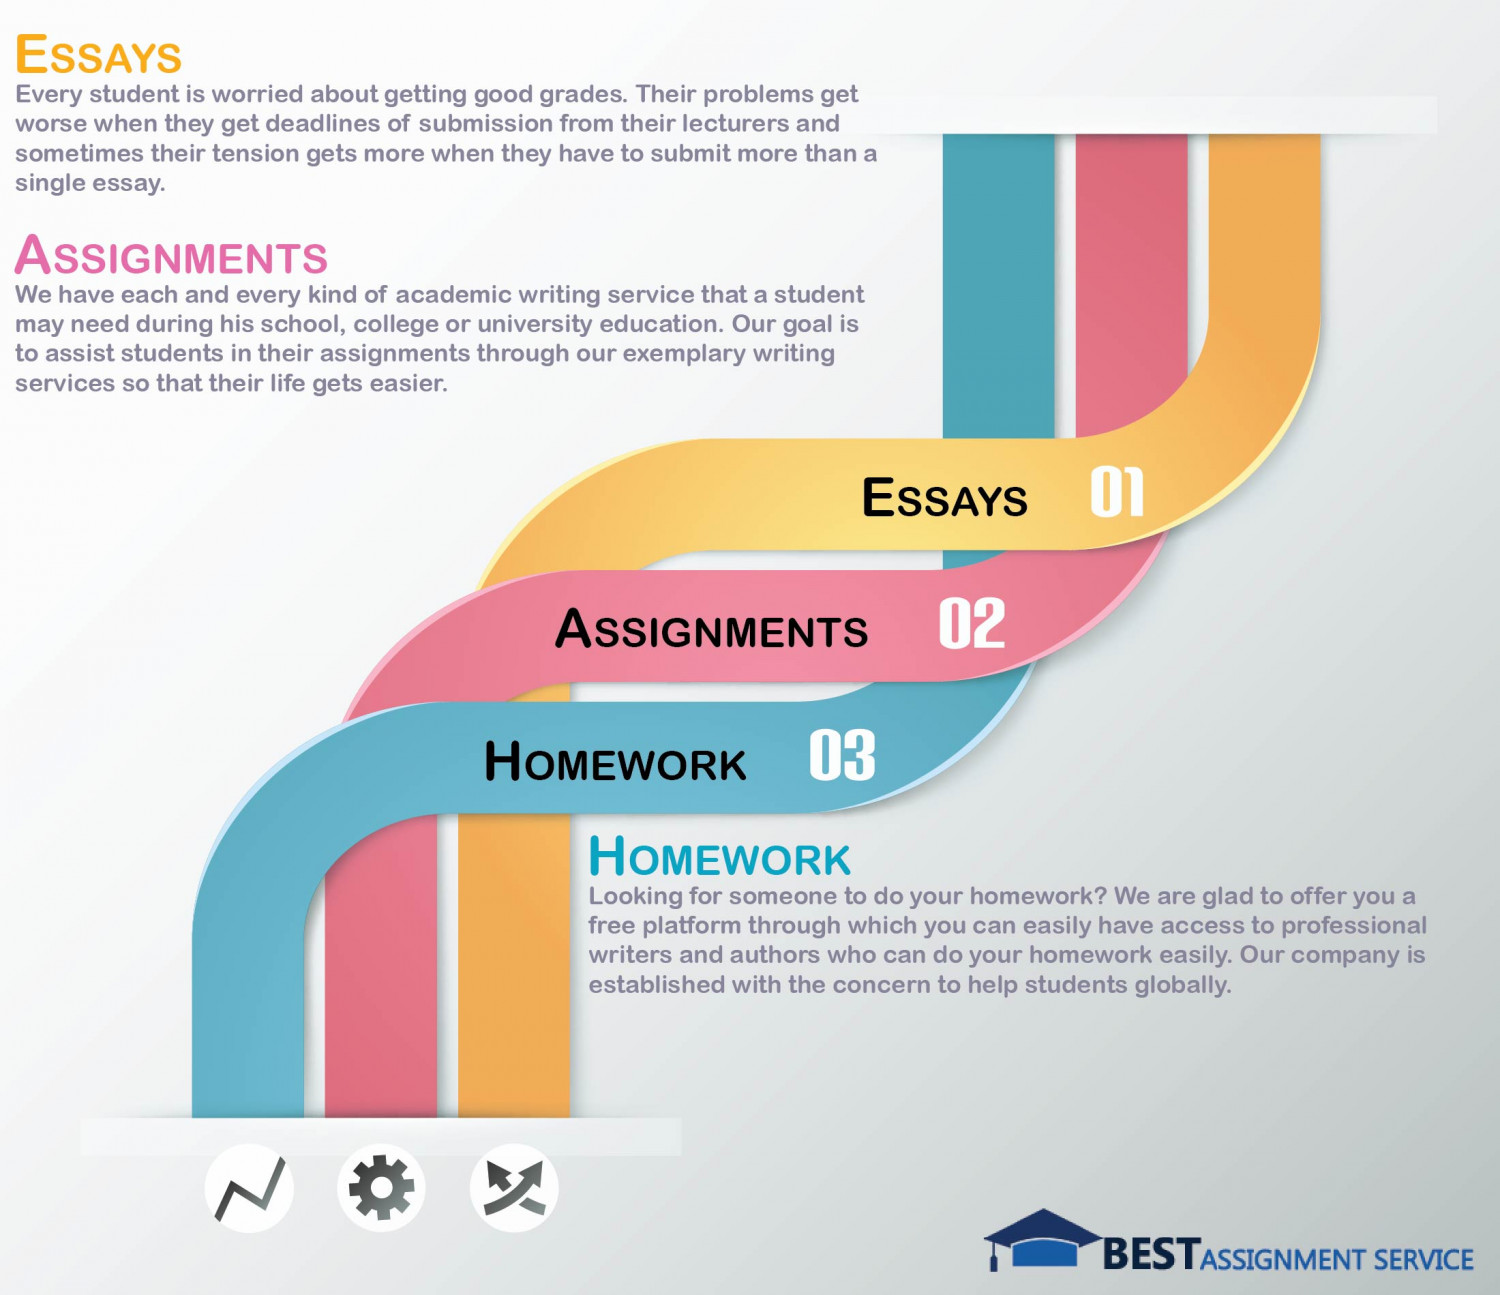 buy essay writing service online in ly buy essay writing service online in infographic